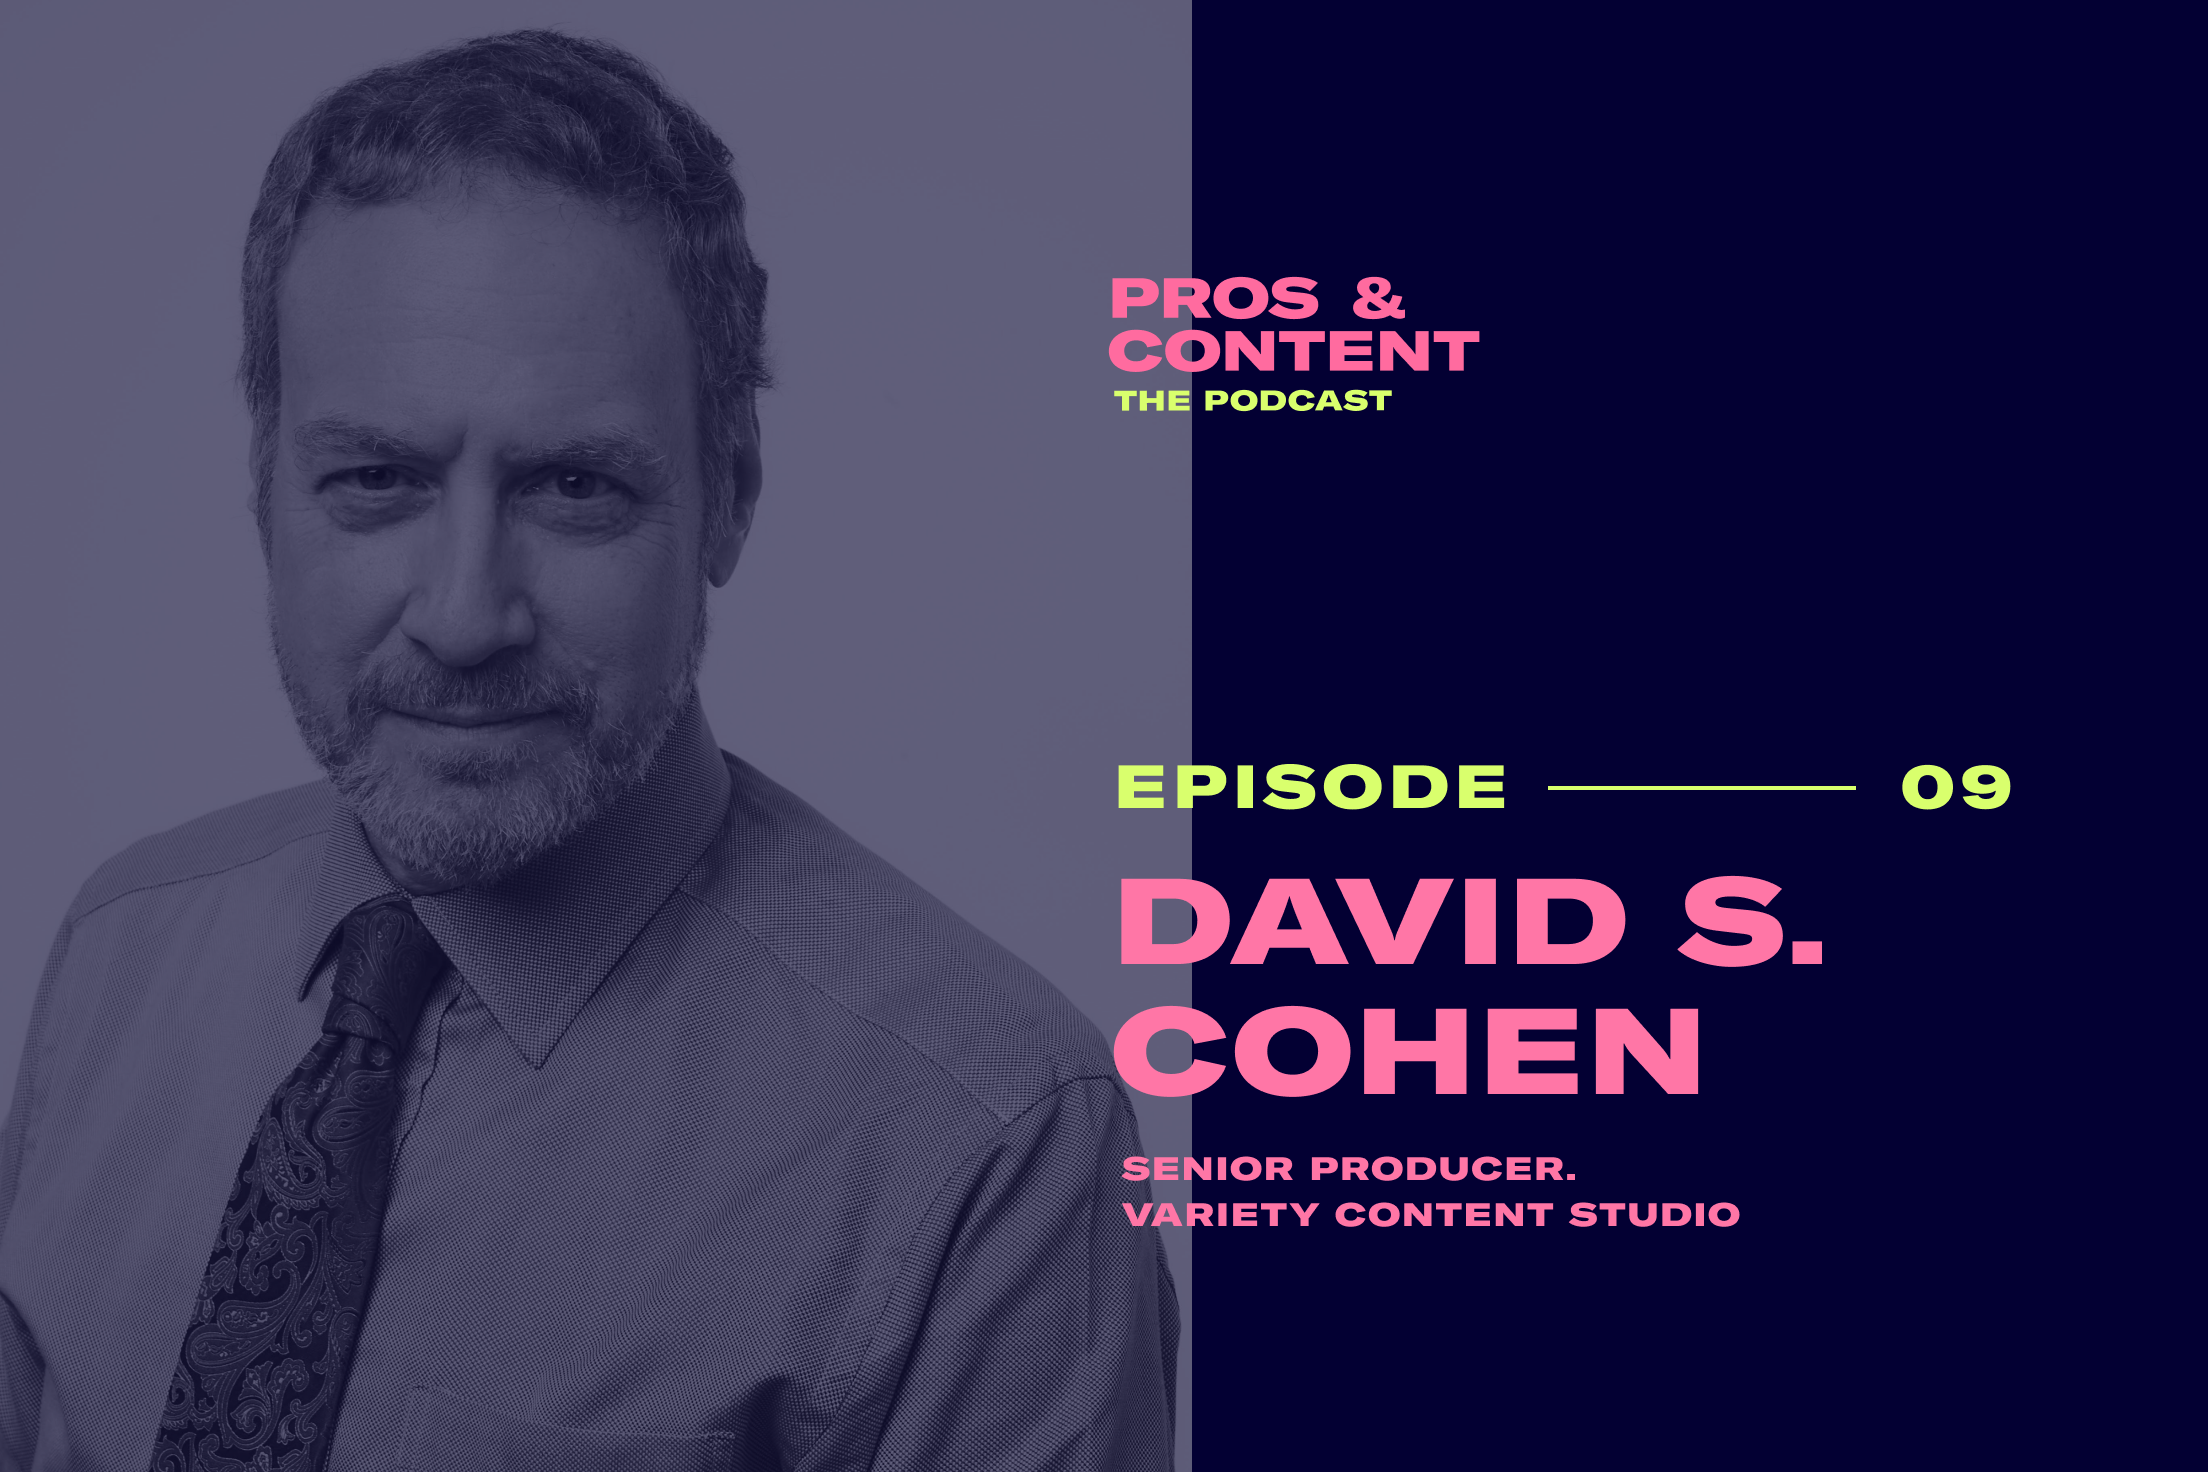 Pros & Content Podcast: David S. Cohen (Senior Producer at Variety Content Studio)